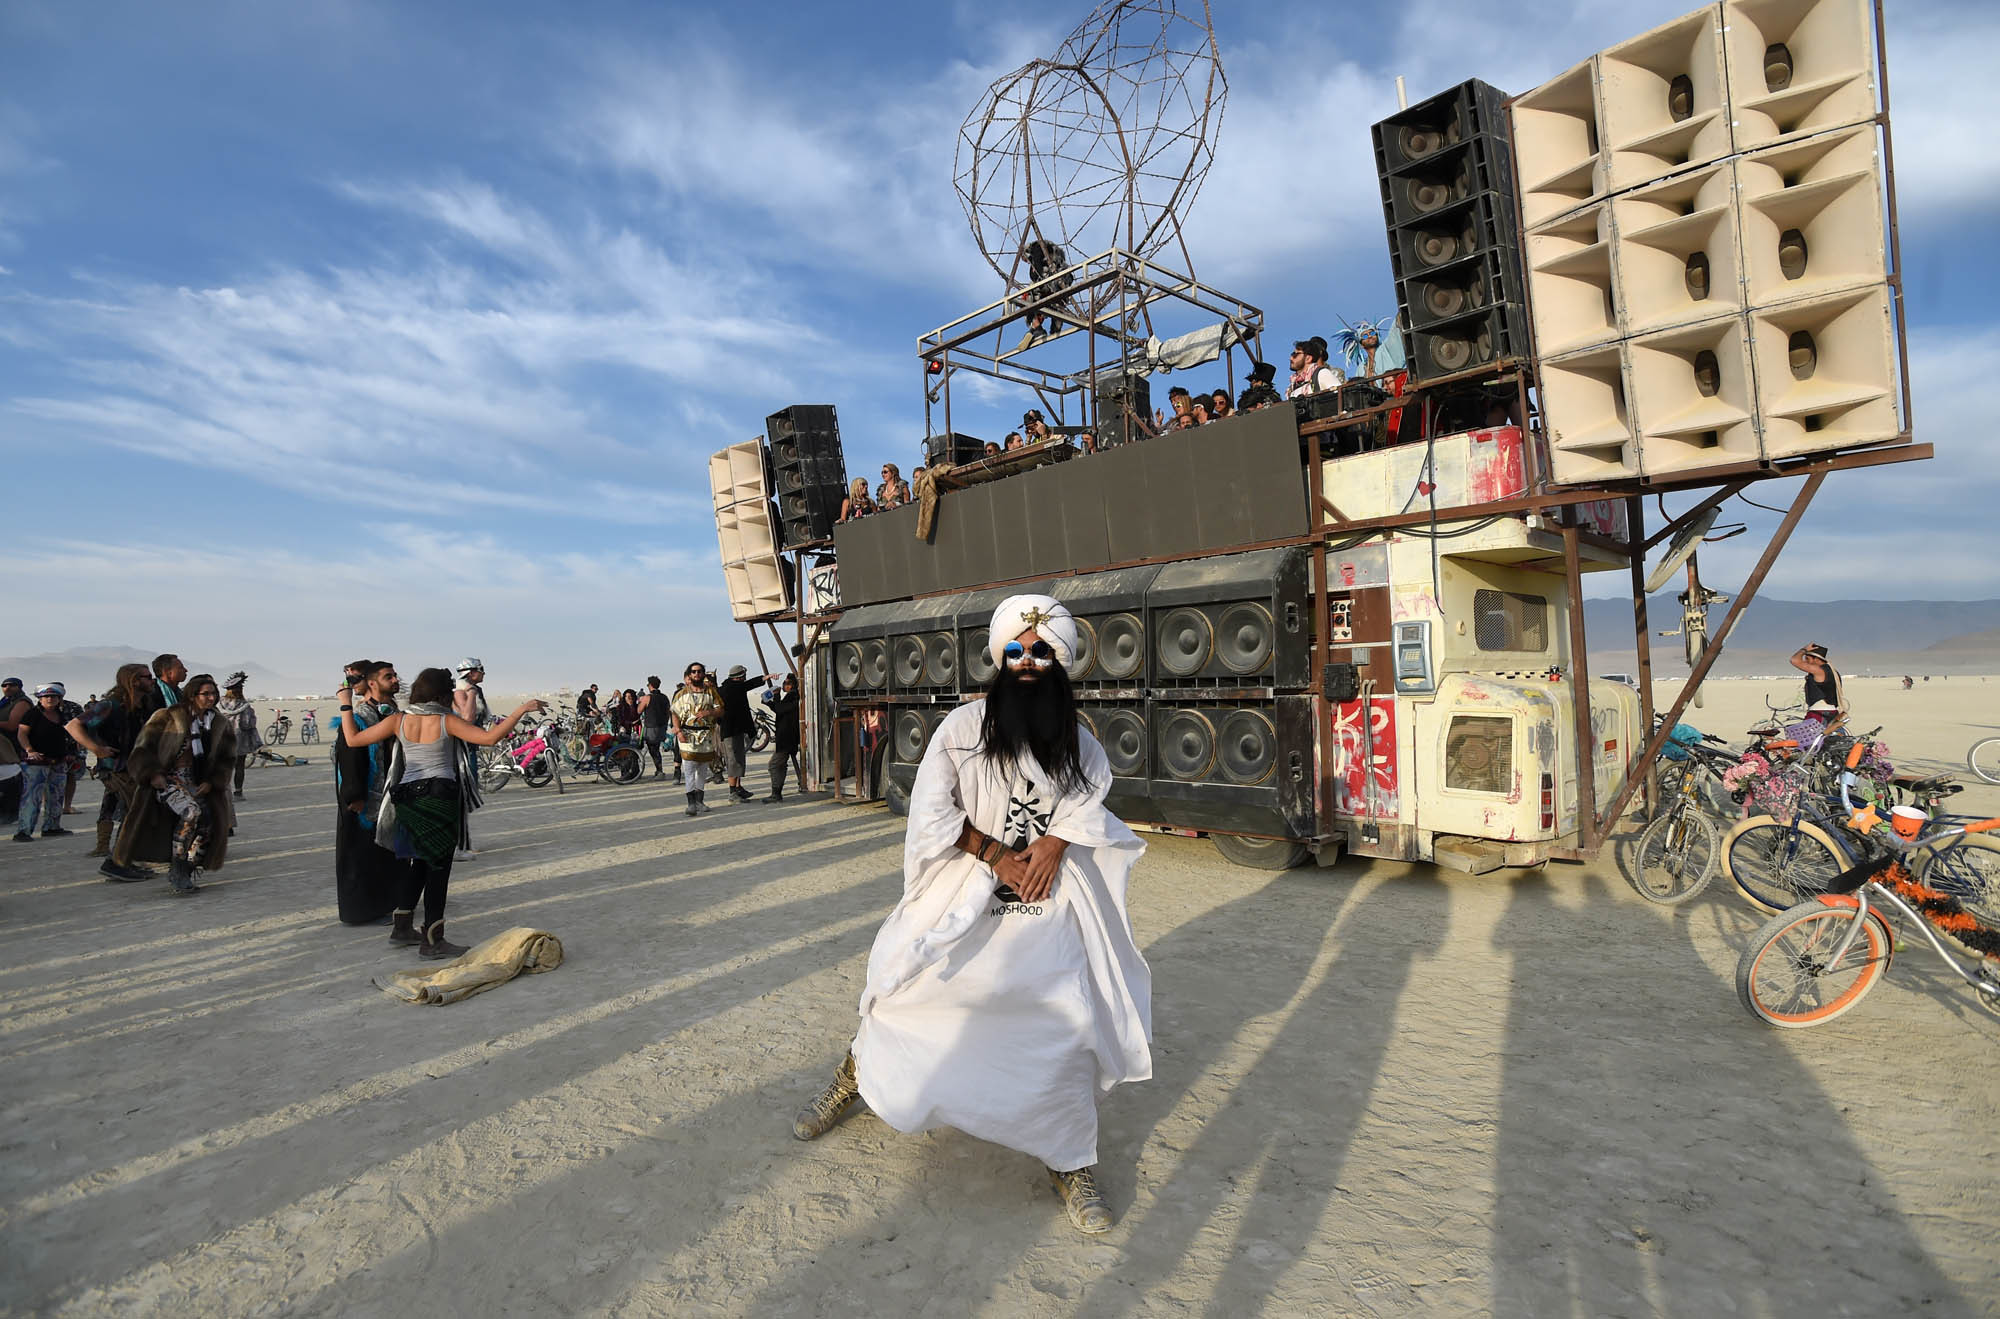 Burning Man Organizers Sue U.S. Government to Recover Millions in Permit Fees